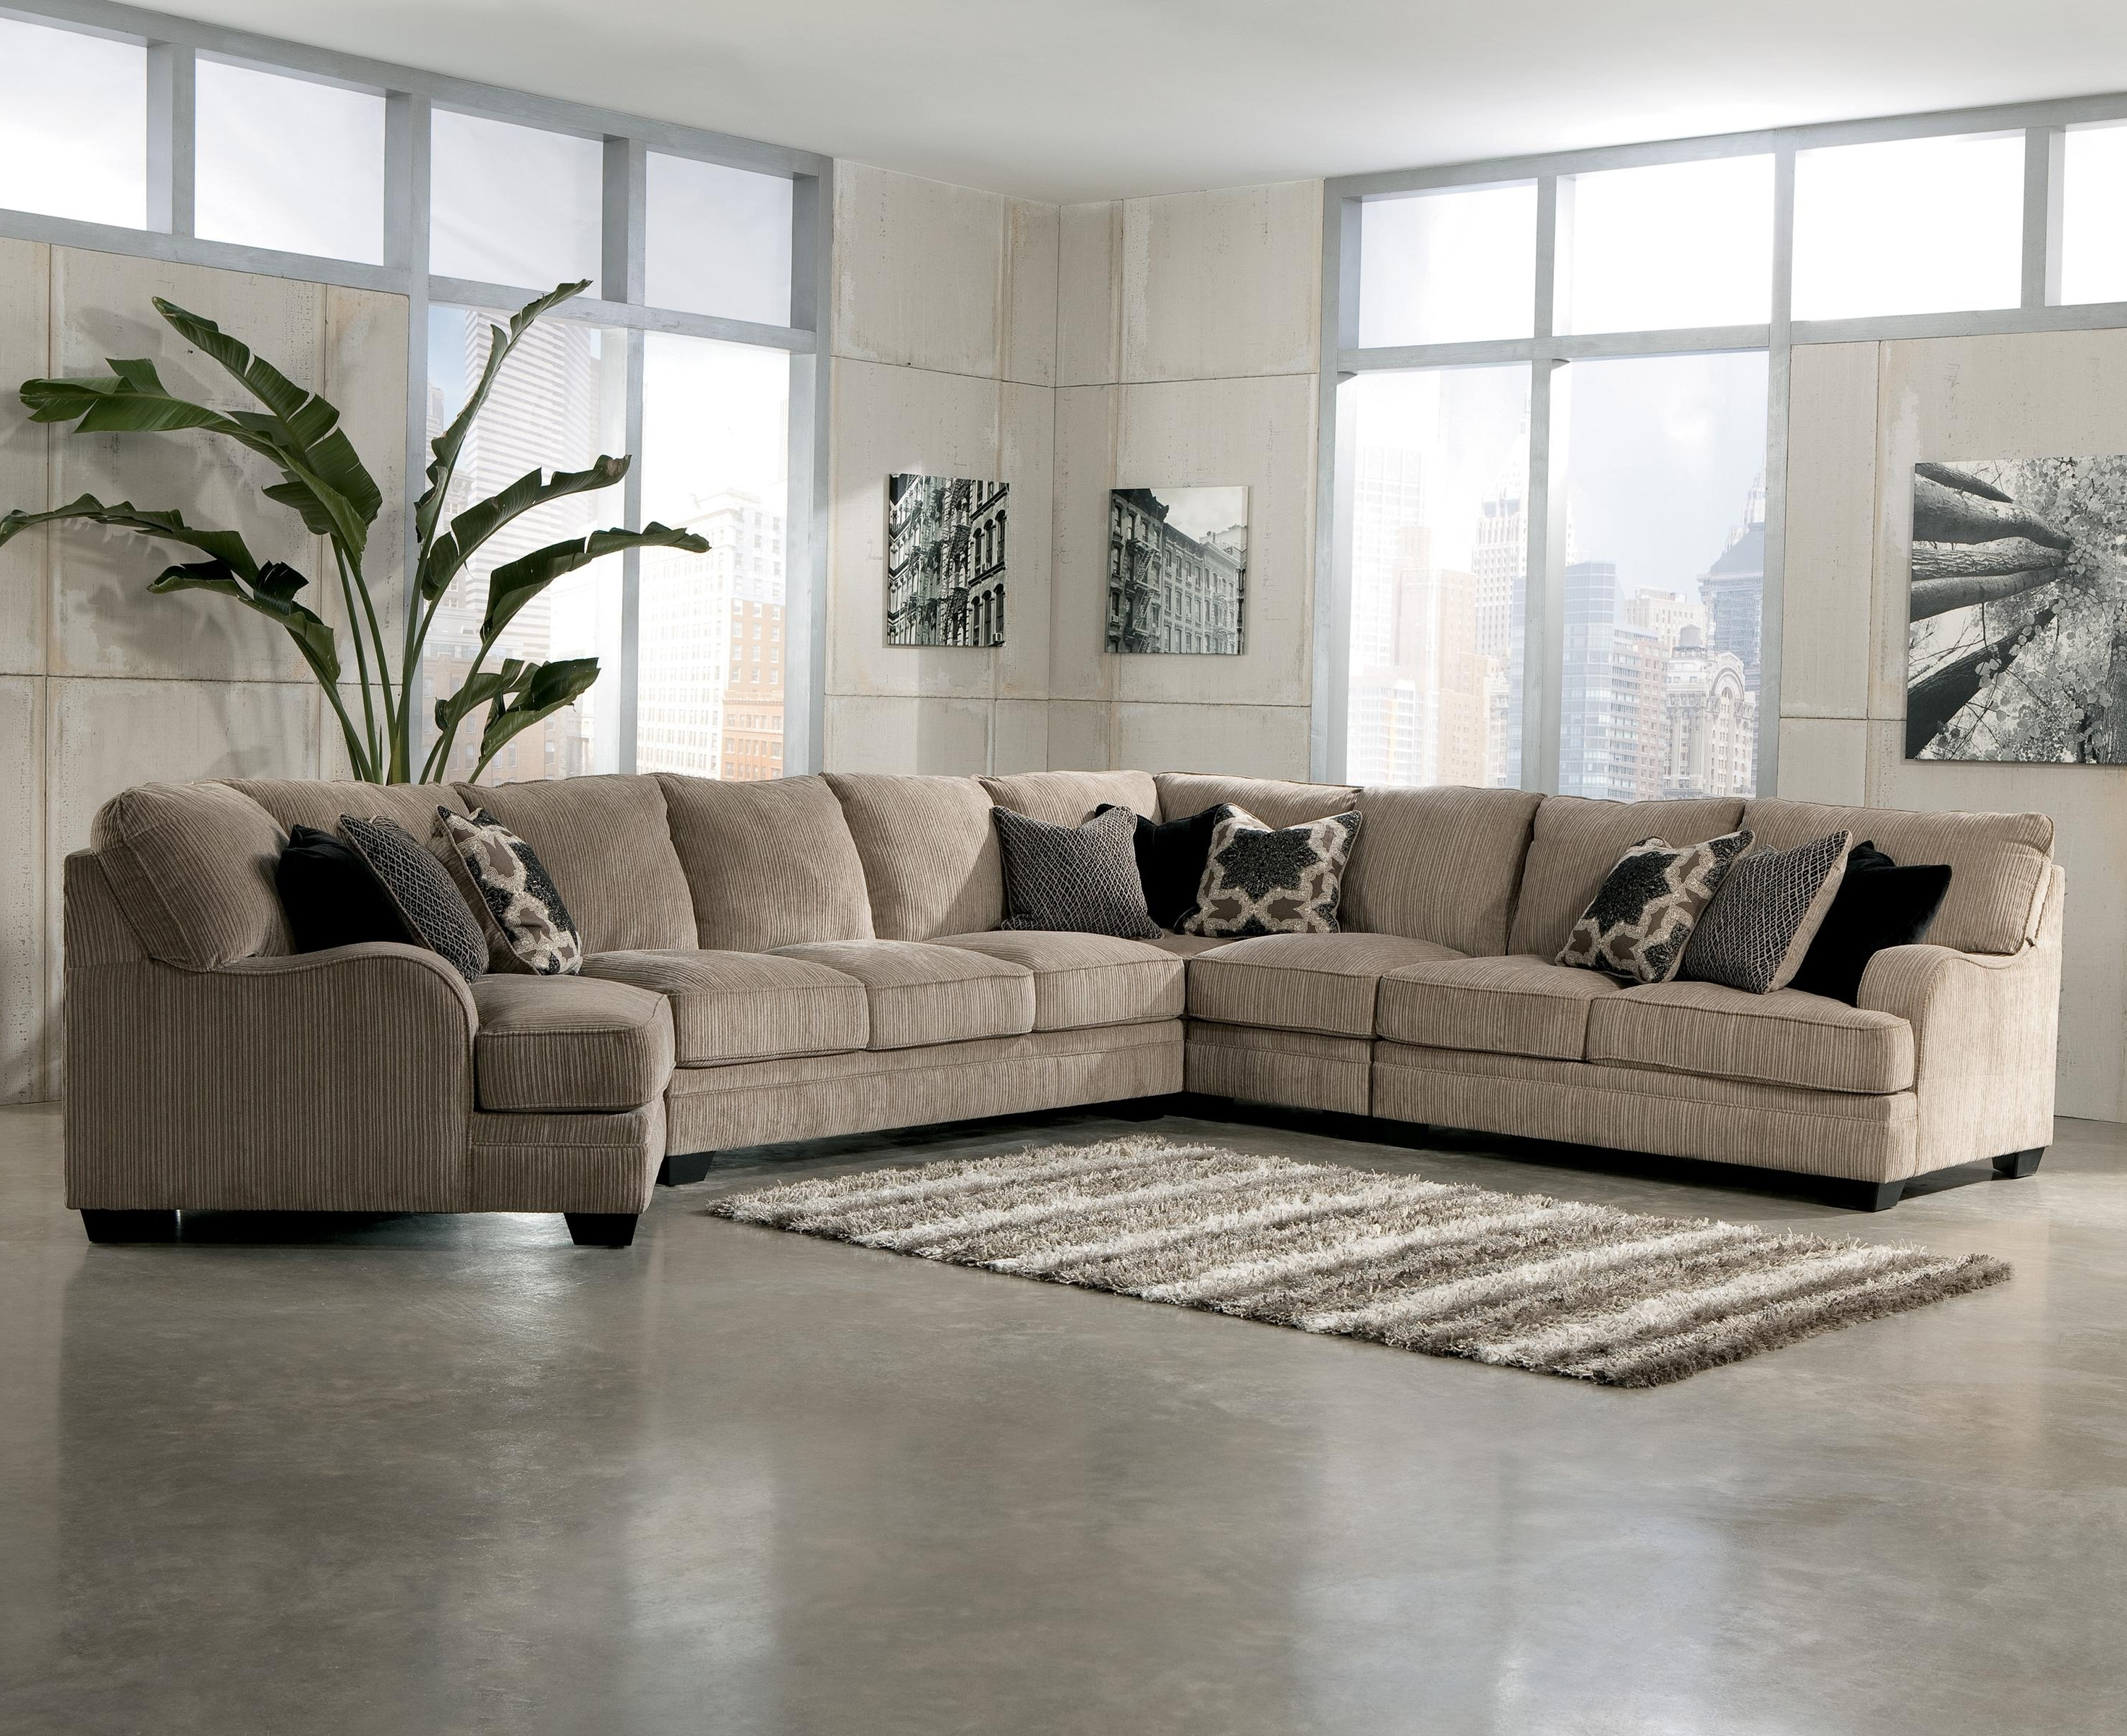 Fashionable Signature Designashley Katisha – Platinum 5 Piece Sectional Intended For Green Bay Wi Sectional Sofas (View 5 of 15)